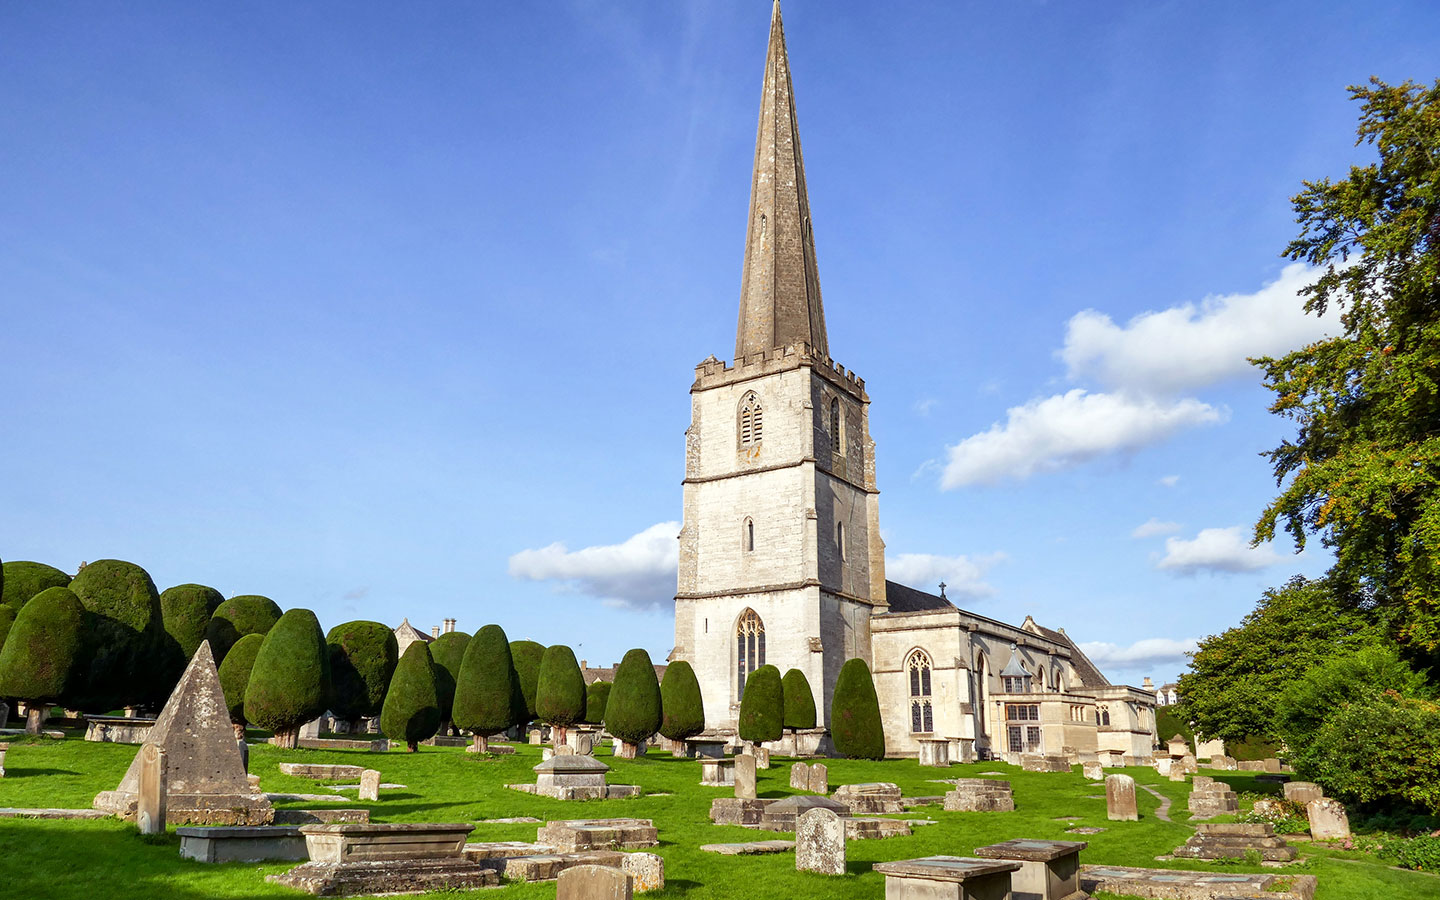 St Mary's Church in Painswick